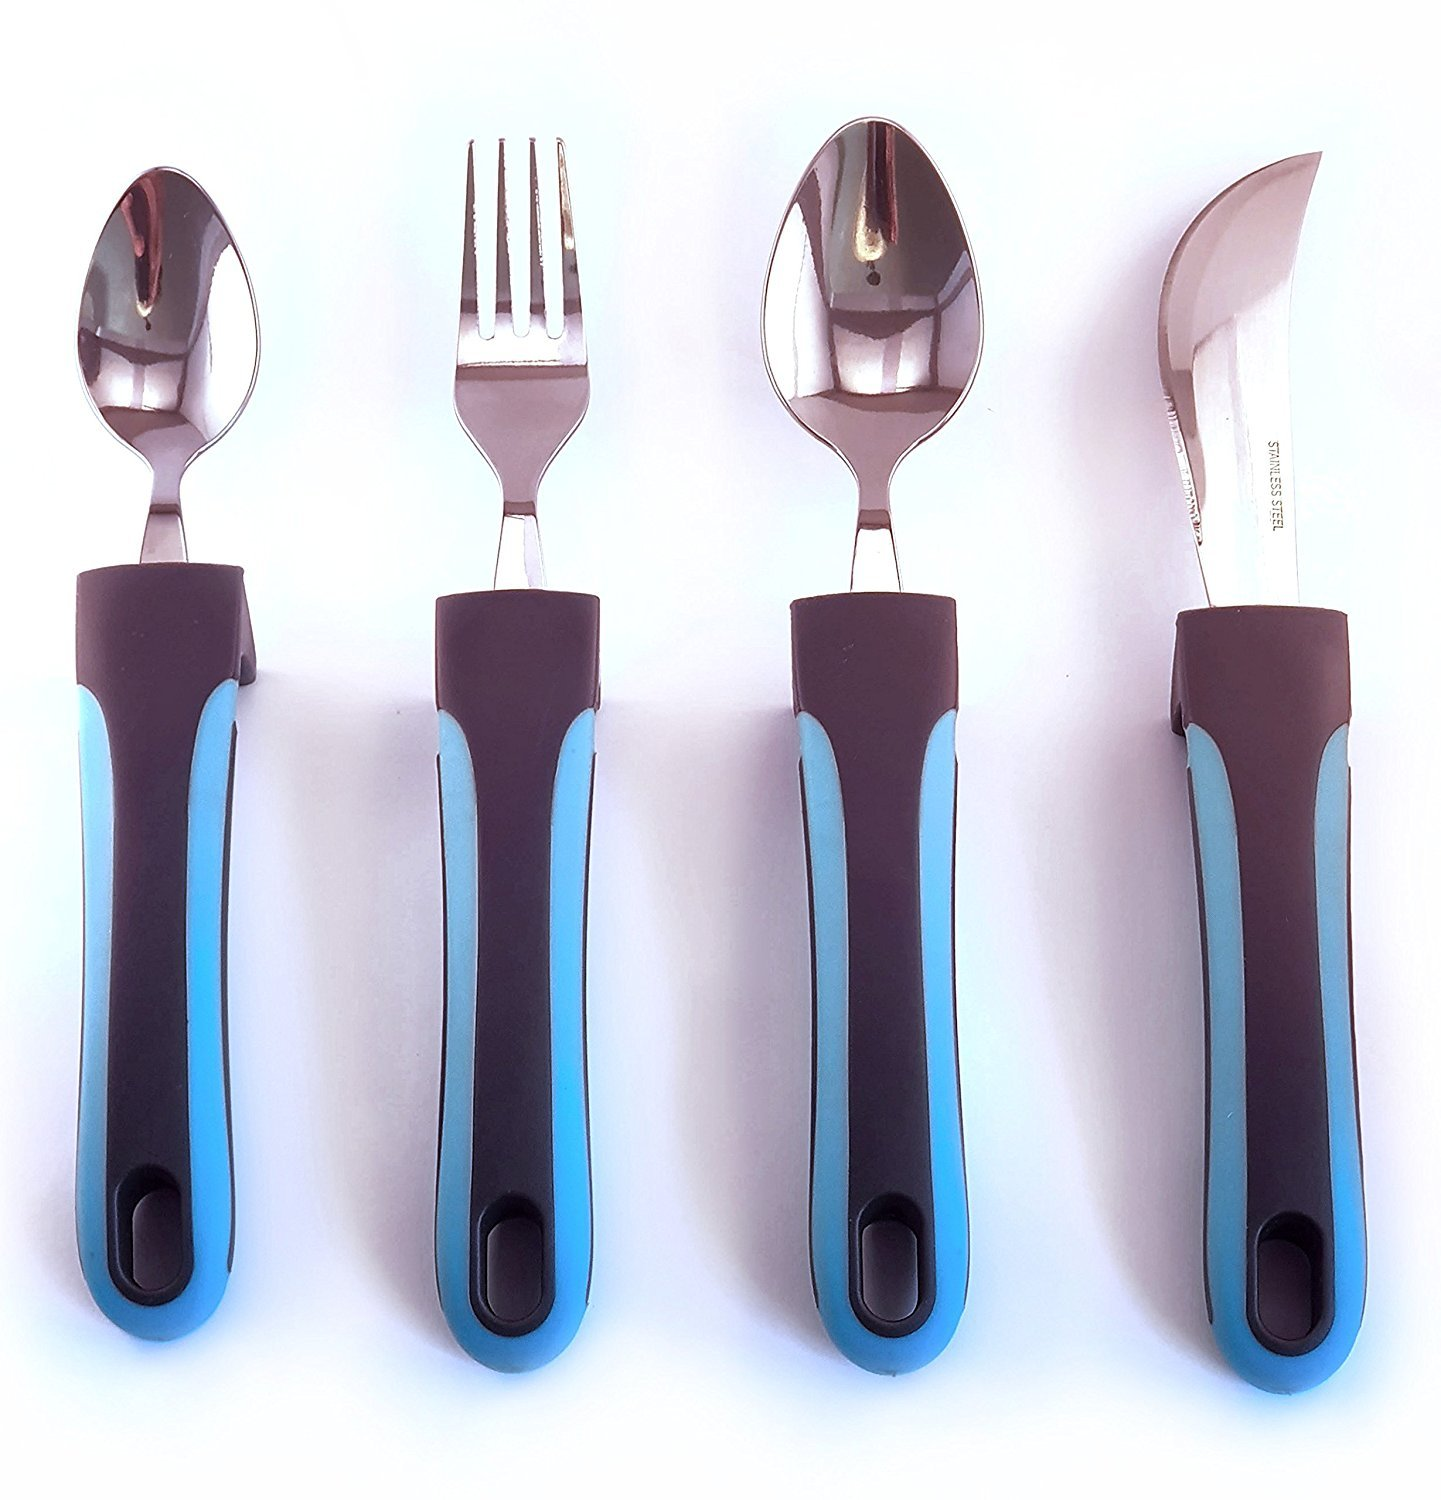 BUNMO Adaptive Utensils - Weighted Knives, Forks and Spoons Silverware Set for Elderly People, Disability, Parkinsons, Arthritis Aid, Handicapped, Hand Muscle Weakness, Large Grip Curved